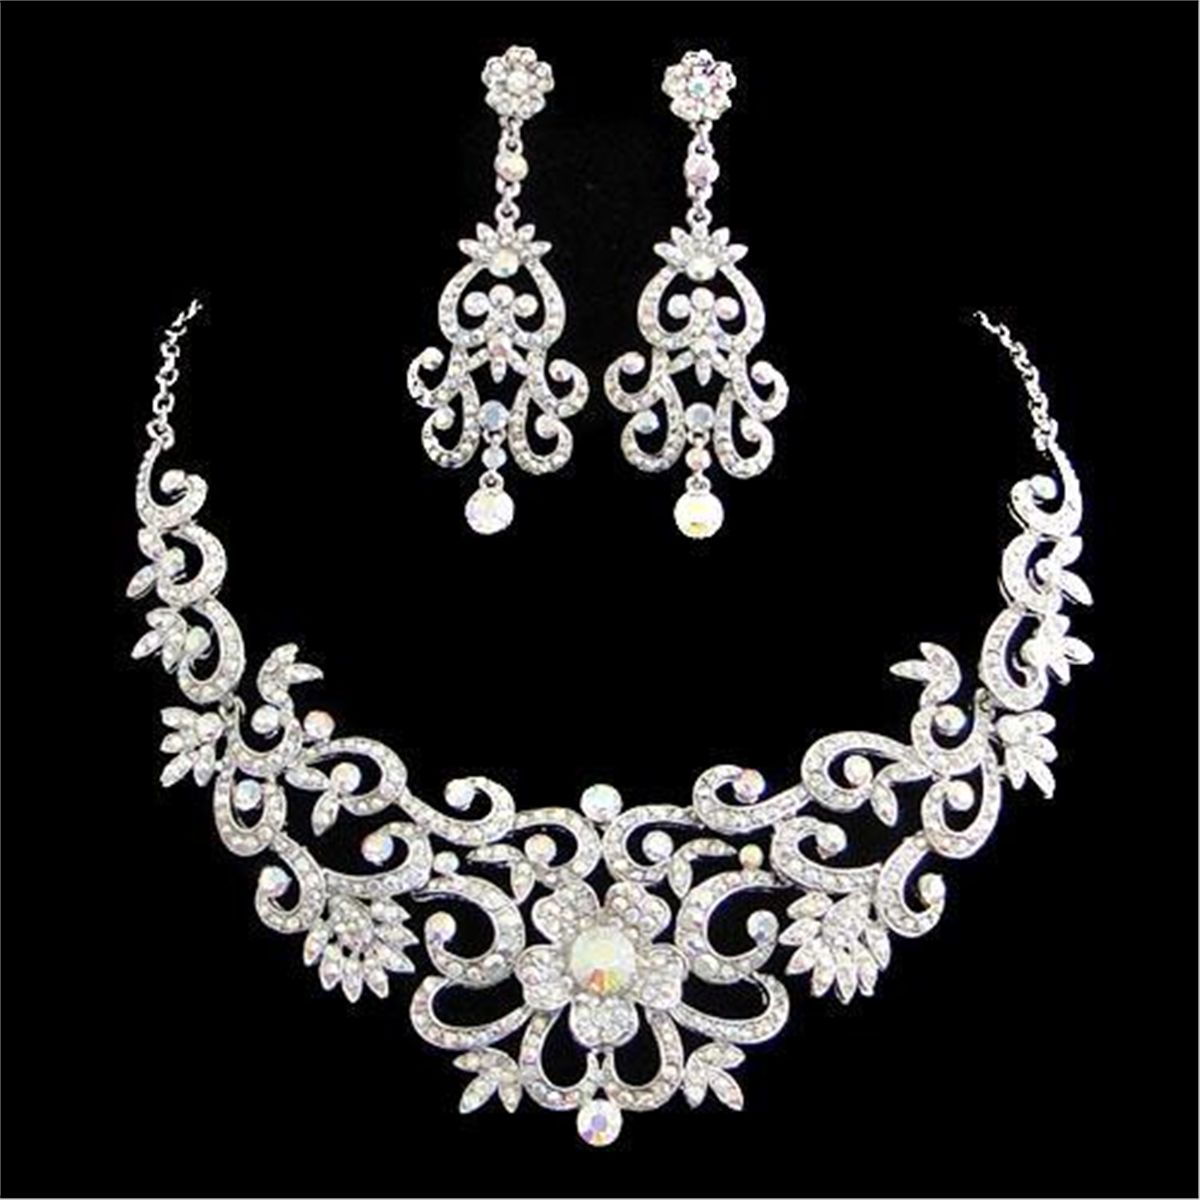 Intricate Floral Design Swarovski Crystal Necklace and